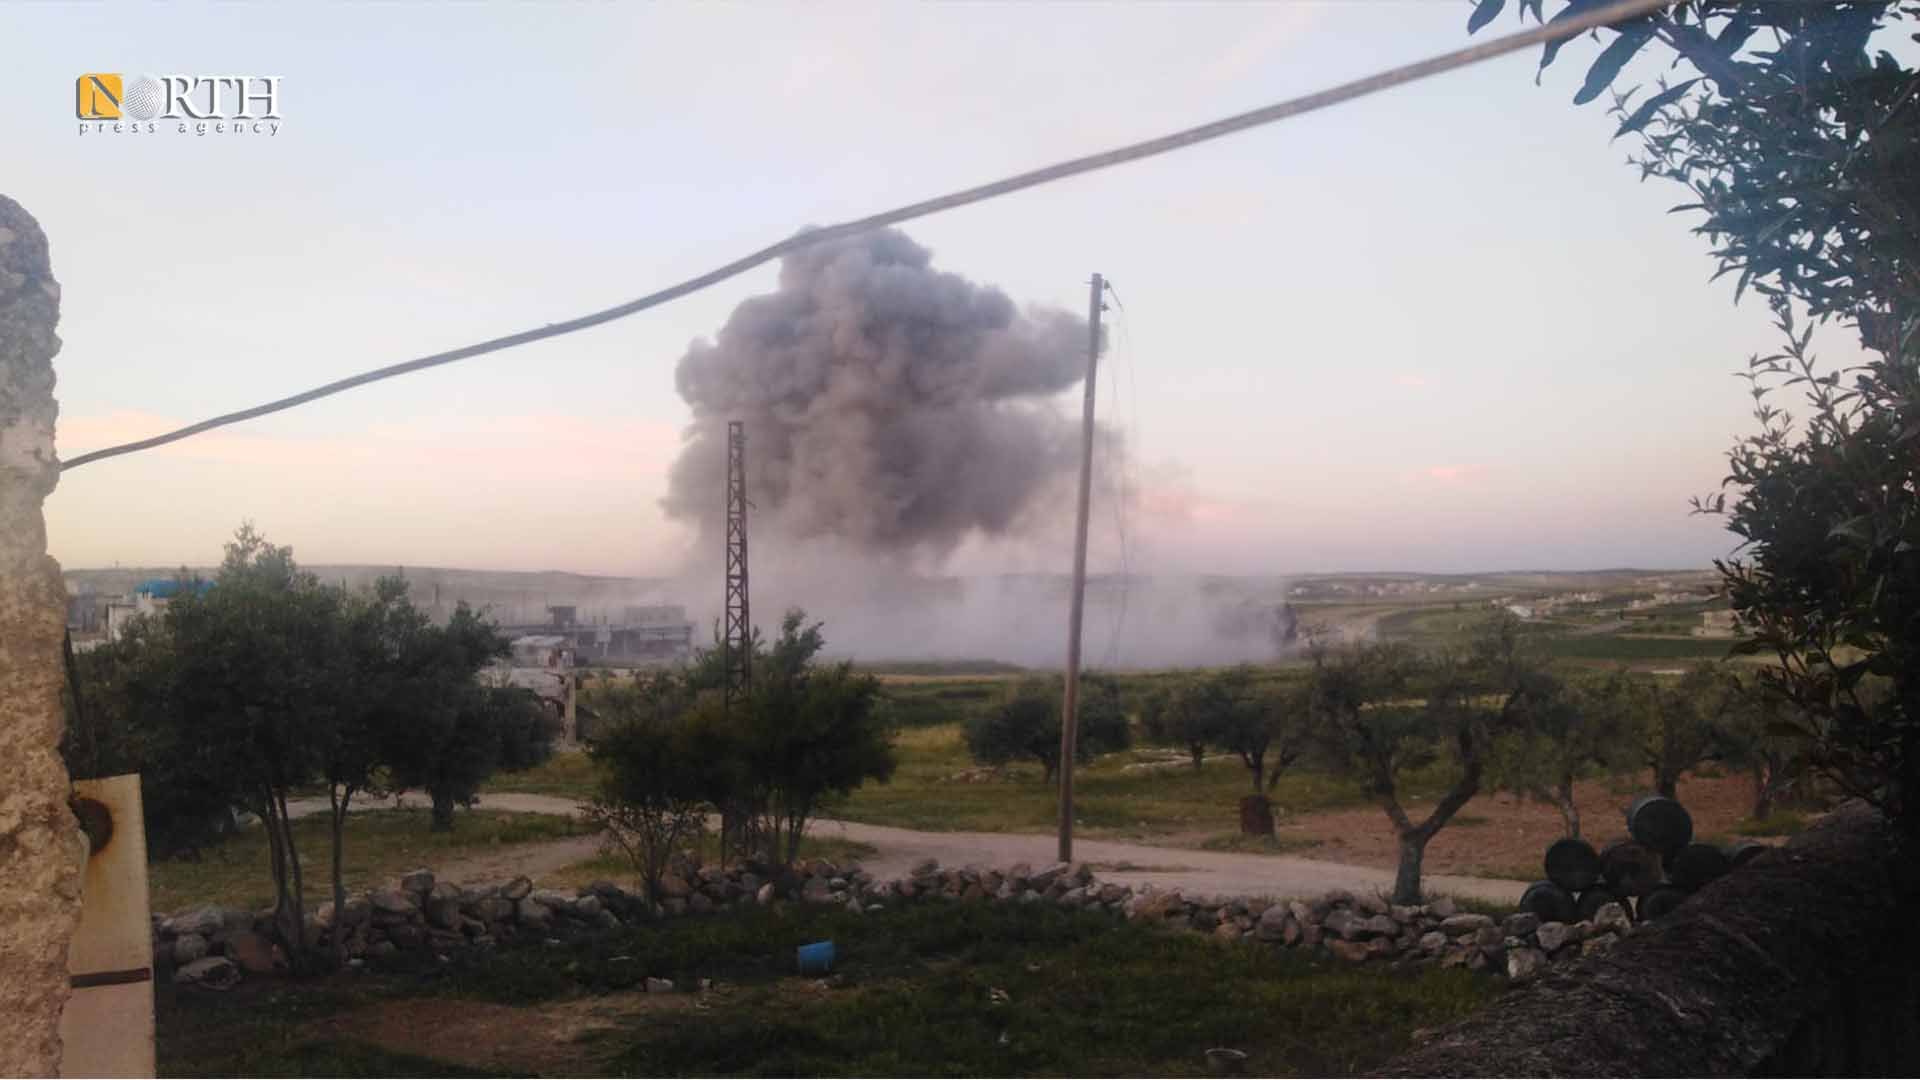 Previous Russian airstrike on the southern countryside of Idlib – North Press/archive